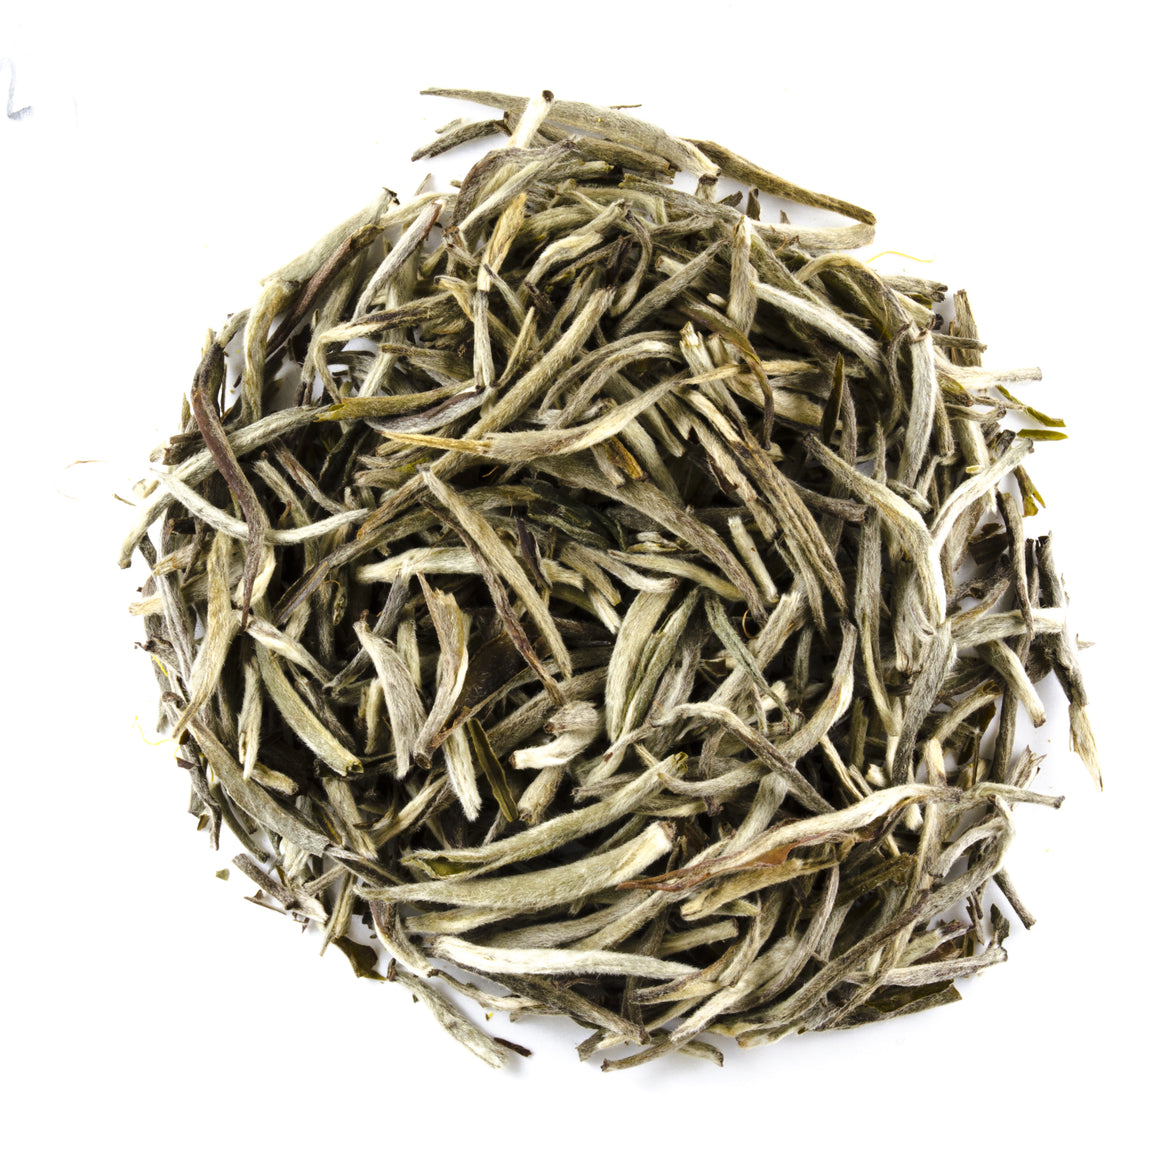 Khongea Assam Silver Needles